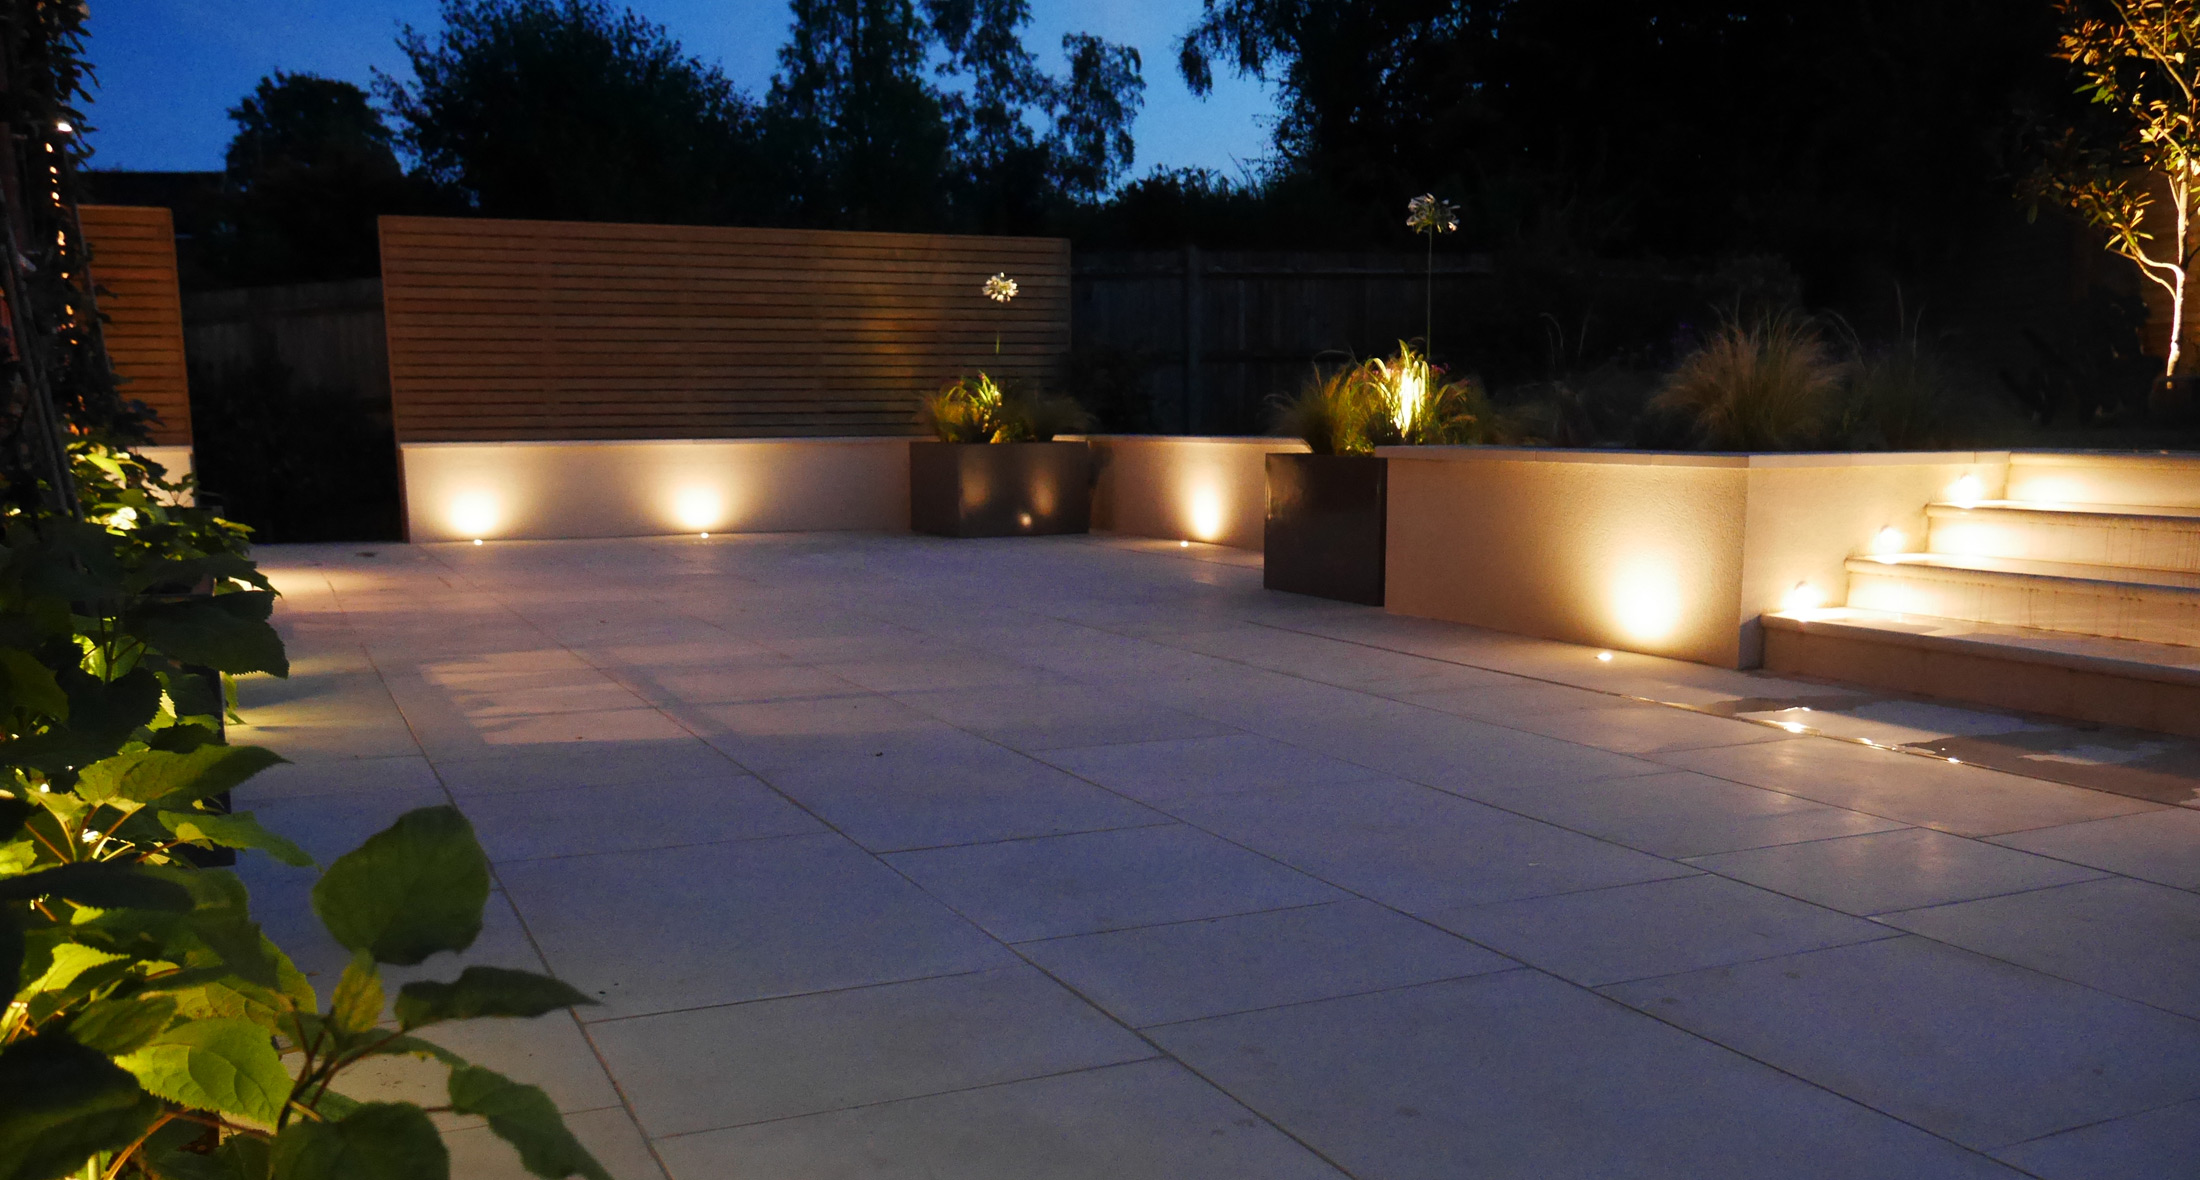 Garden lighting tunbridge wells area slate grey for Garden lighting designs